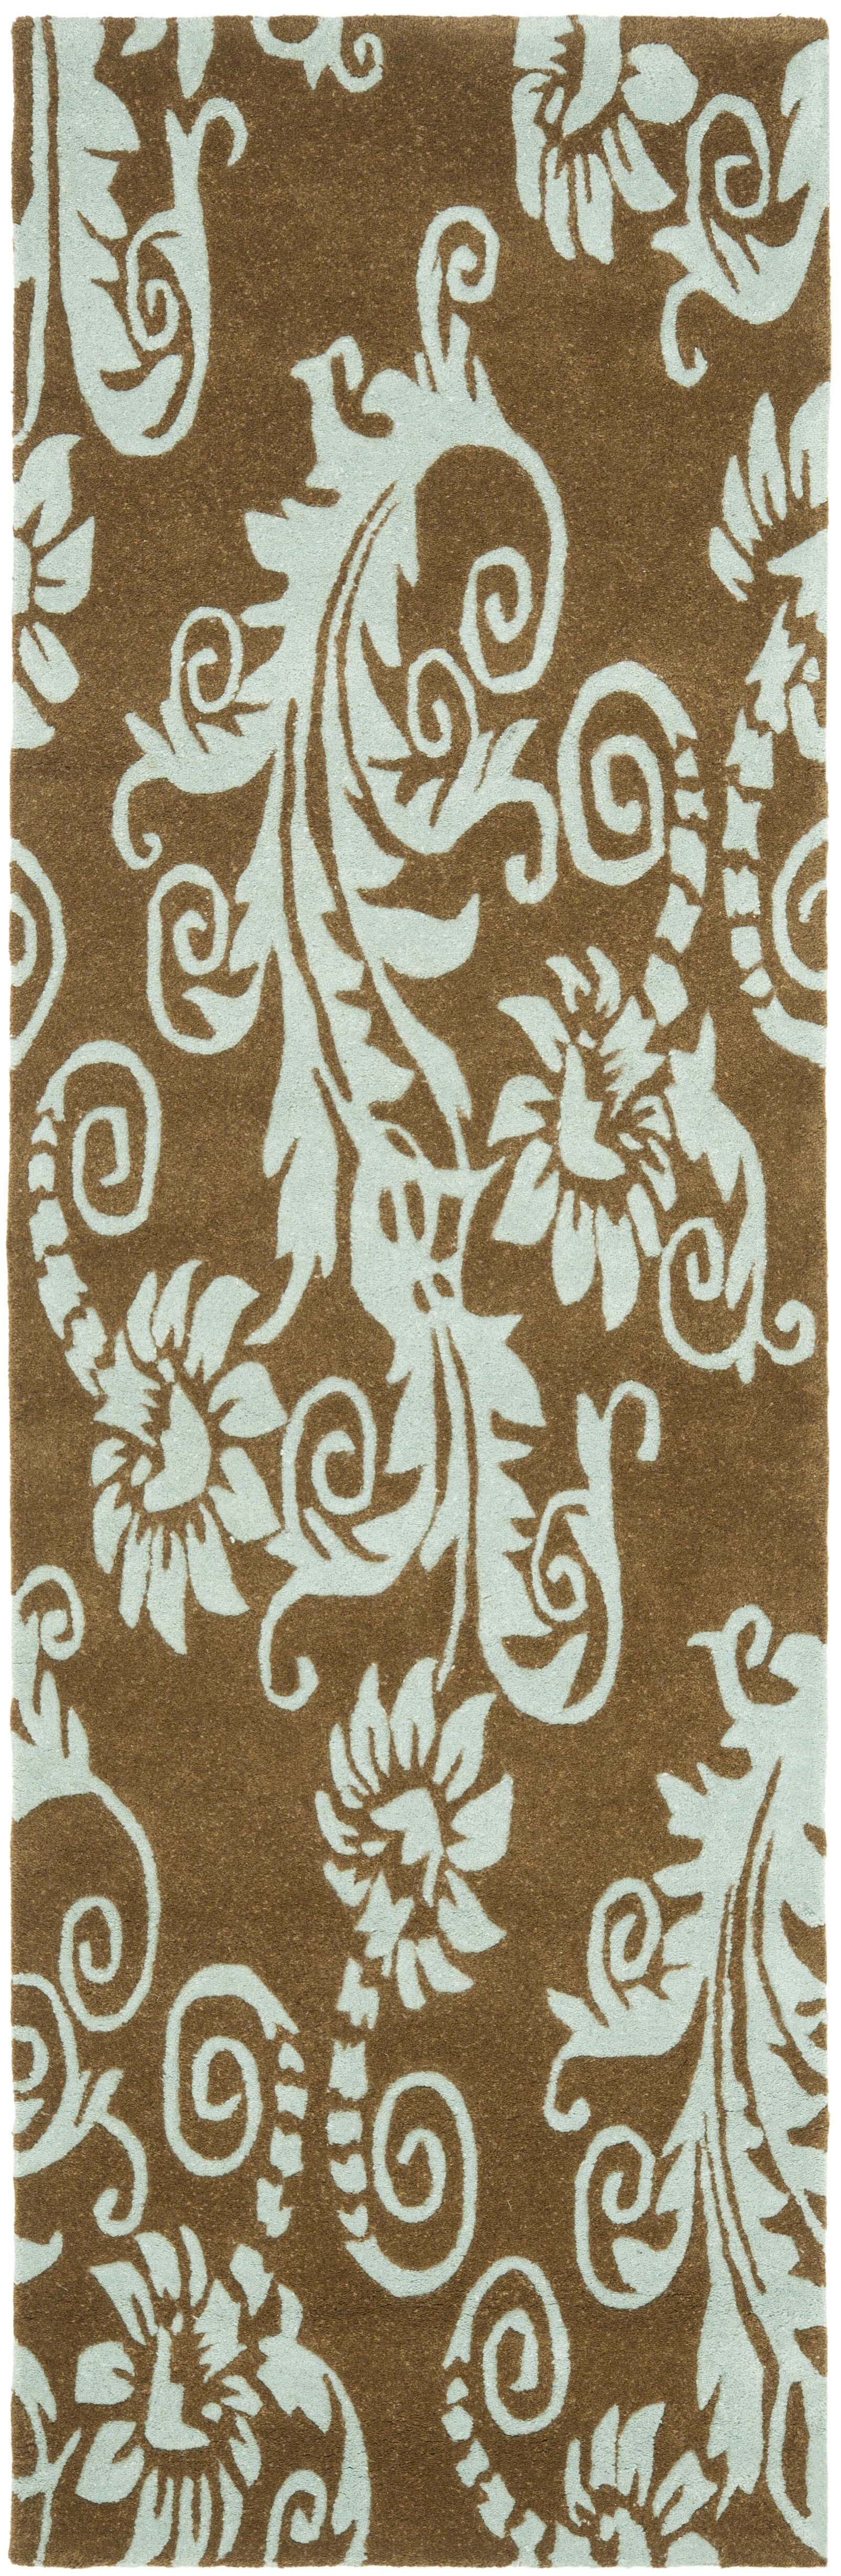 Armstrong Light Brown / Light Blue Contemporary Rug Rug Size: Runner 2'6